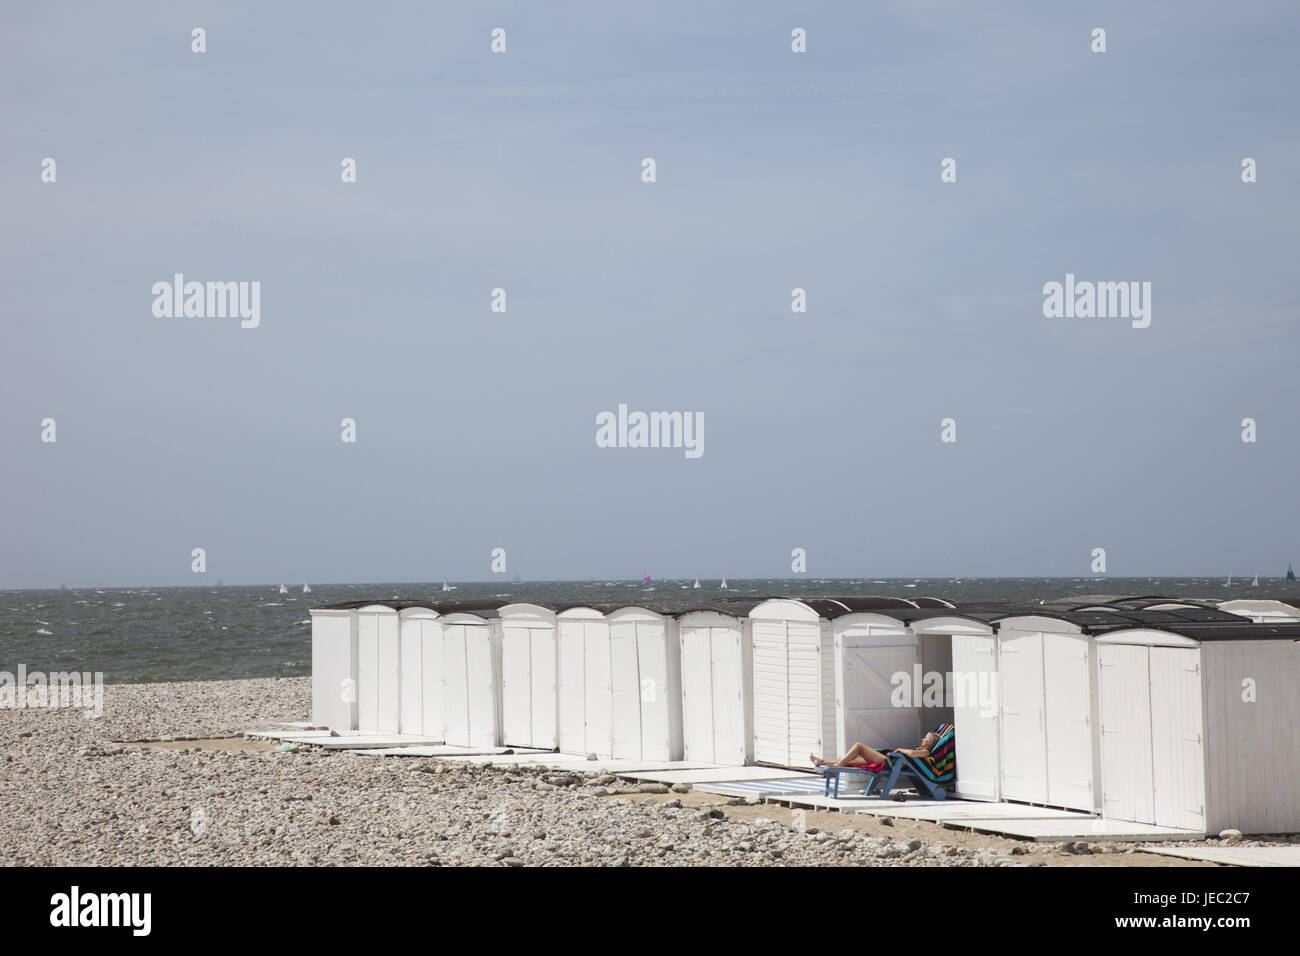 France, Normandy, Le Havre, beach steelworks, - Stock Image